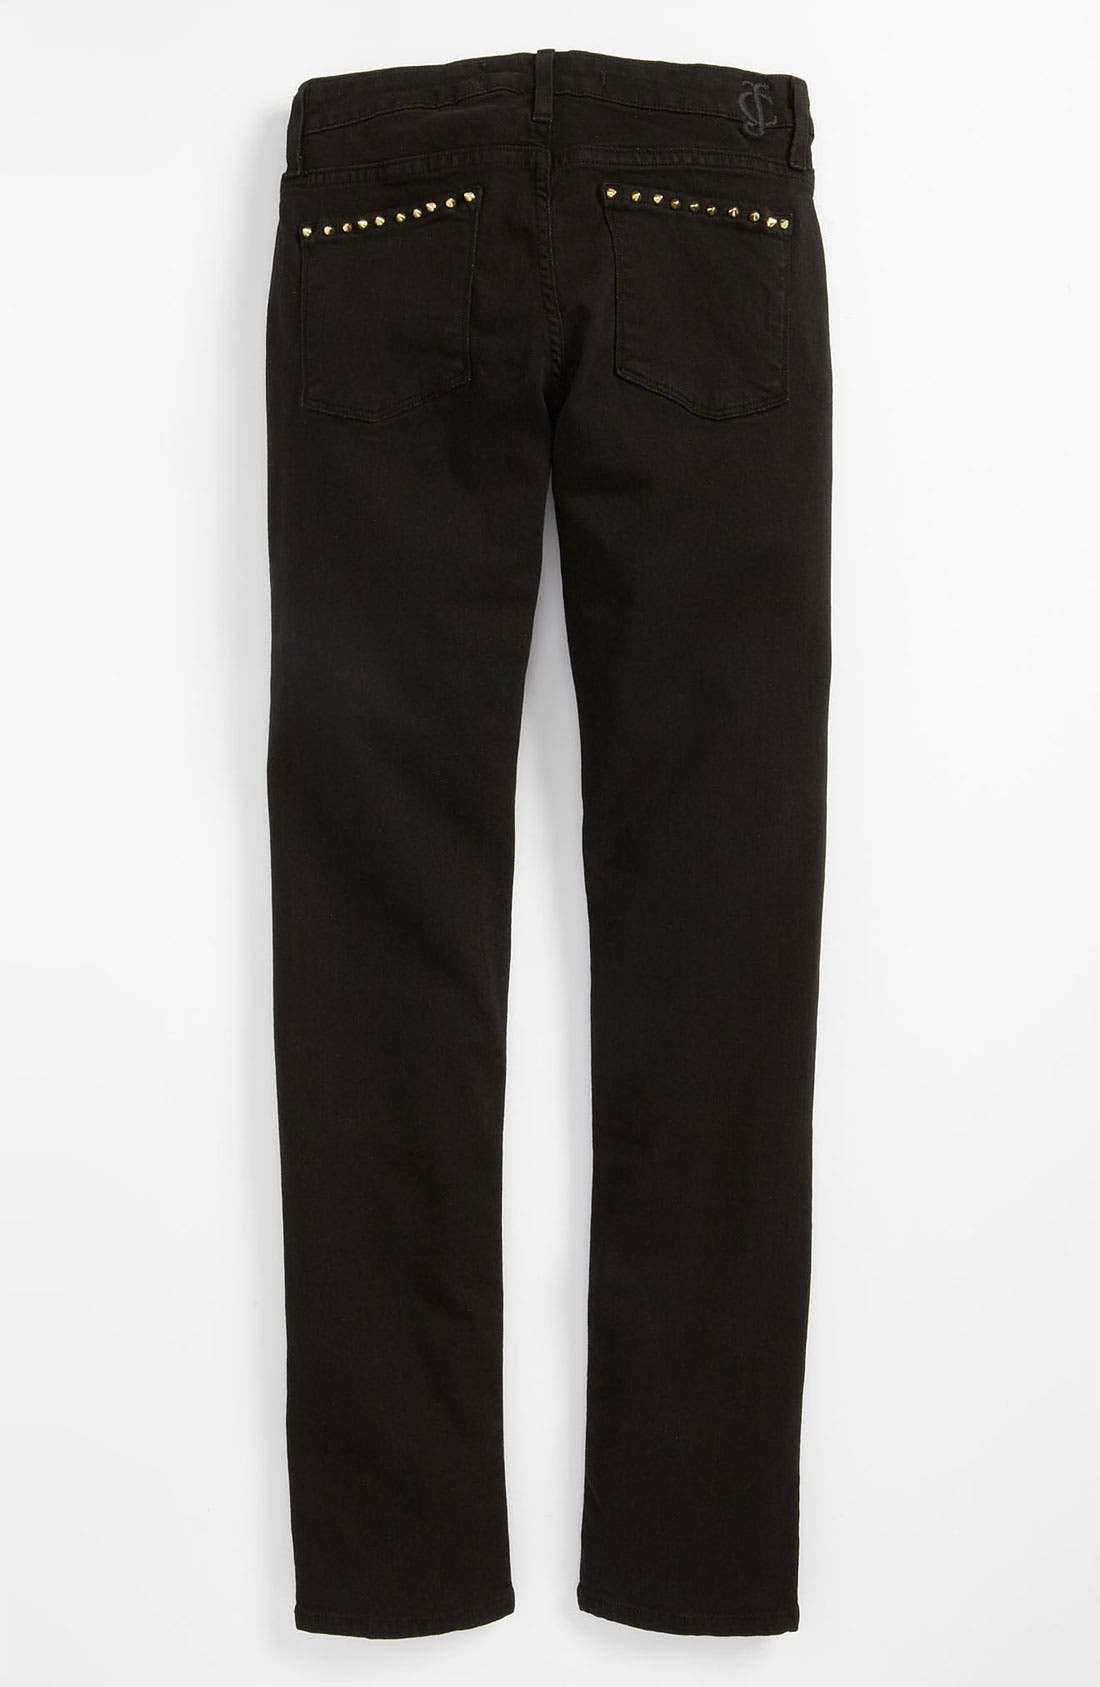 Alternate Image 1 Selected - Juicy Couture Overdyed Skinny Jeans (Little Girls & Big Girls)